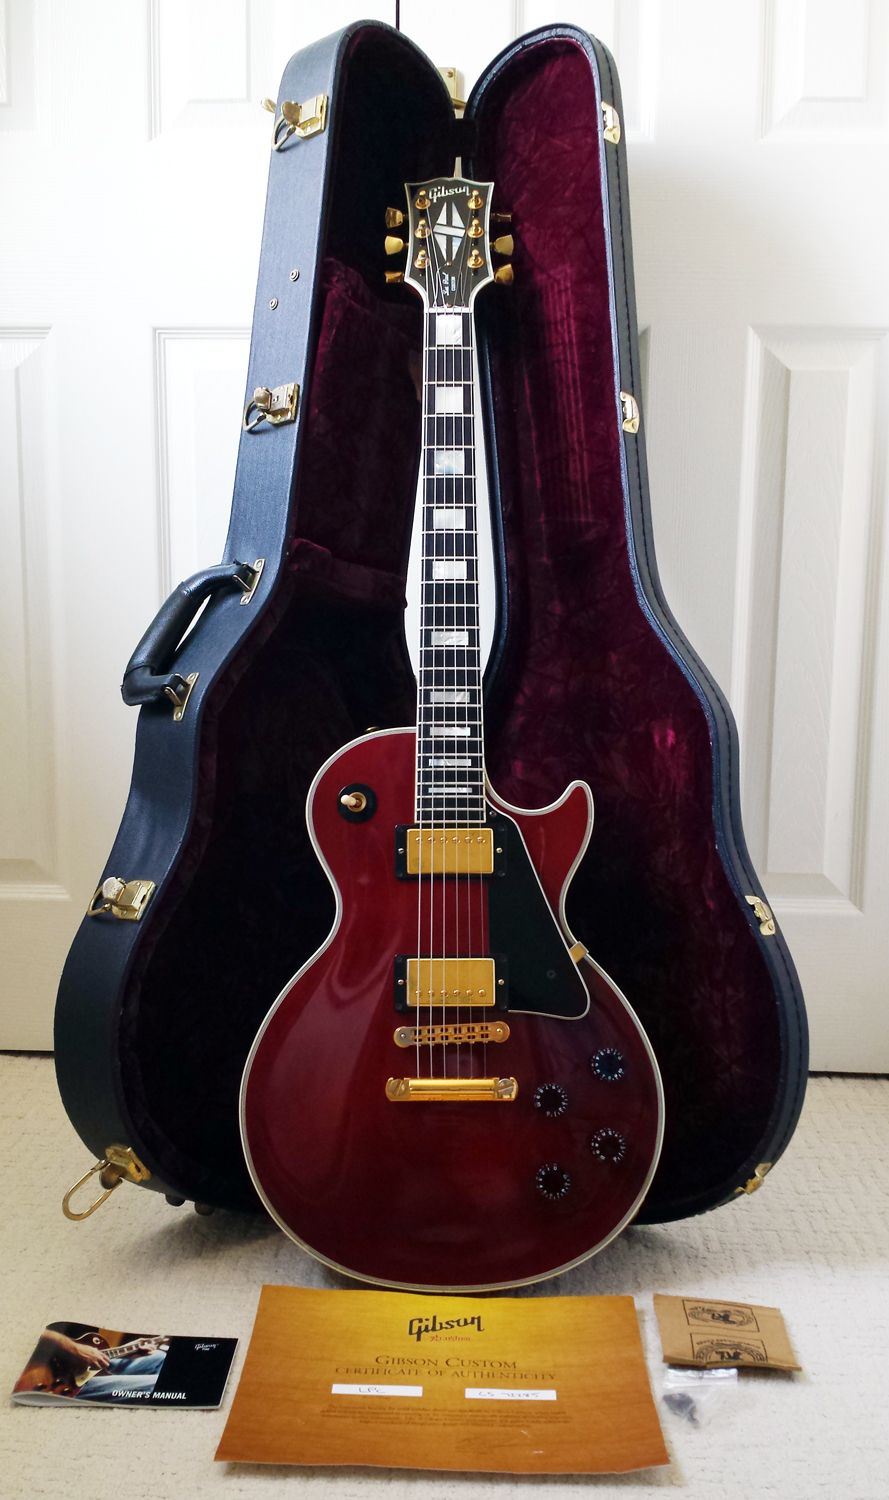 Gibson Les Paul Custom Wine Red 2008 Model Simply because I haven't pinned one of this particular color yet